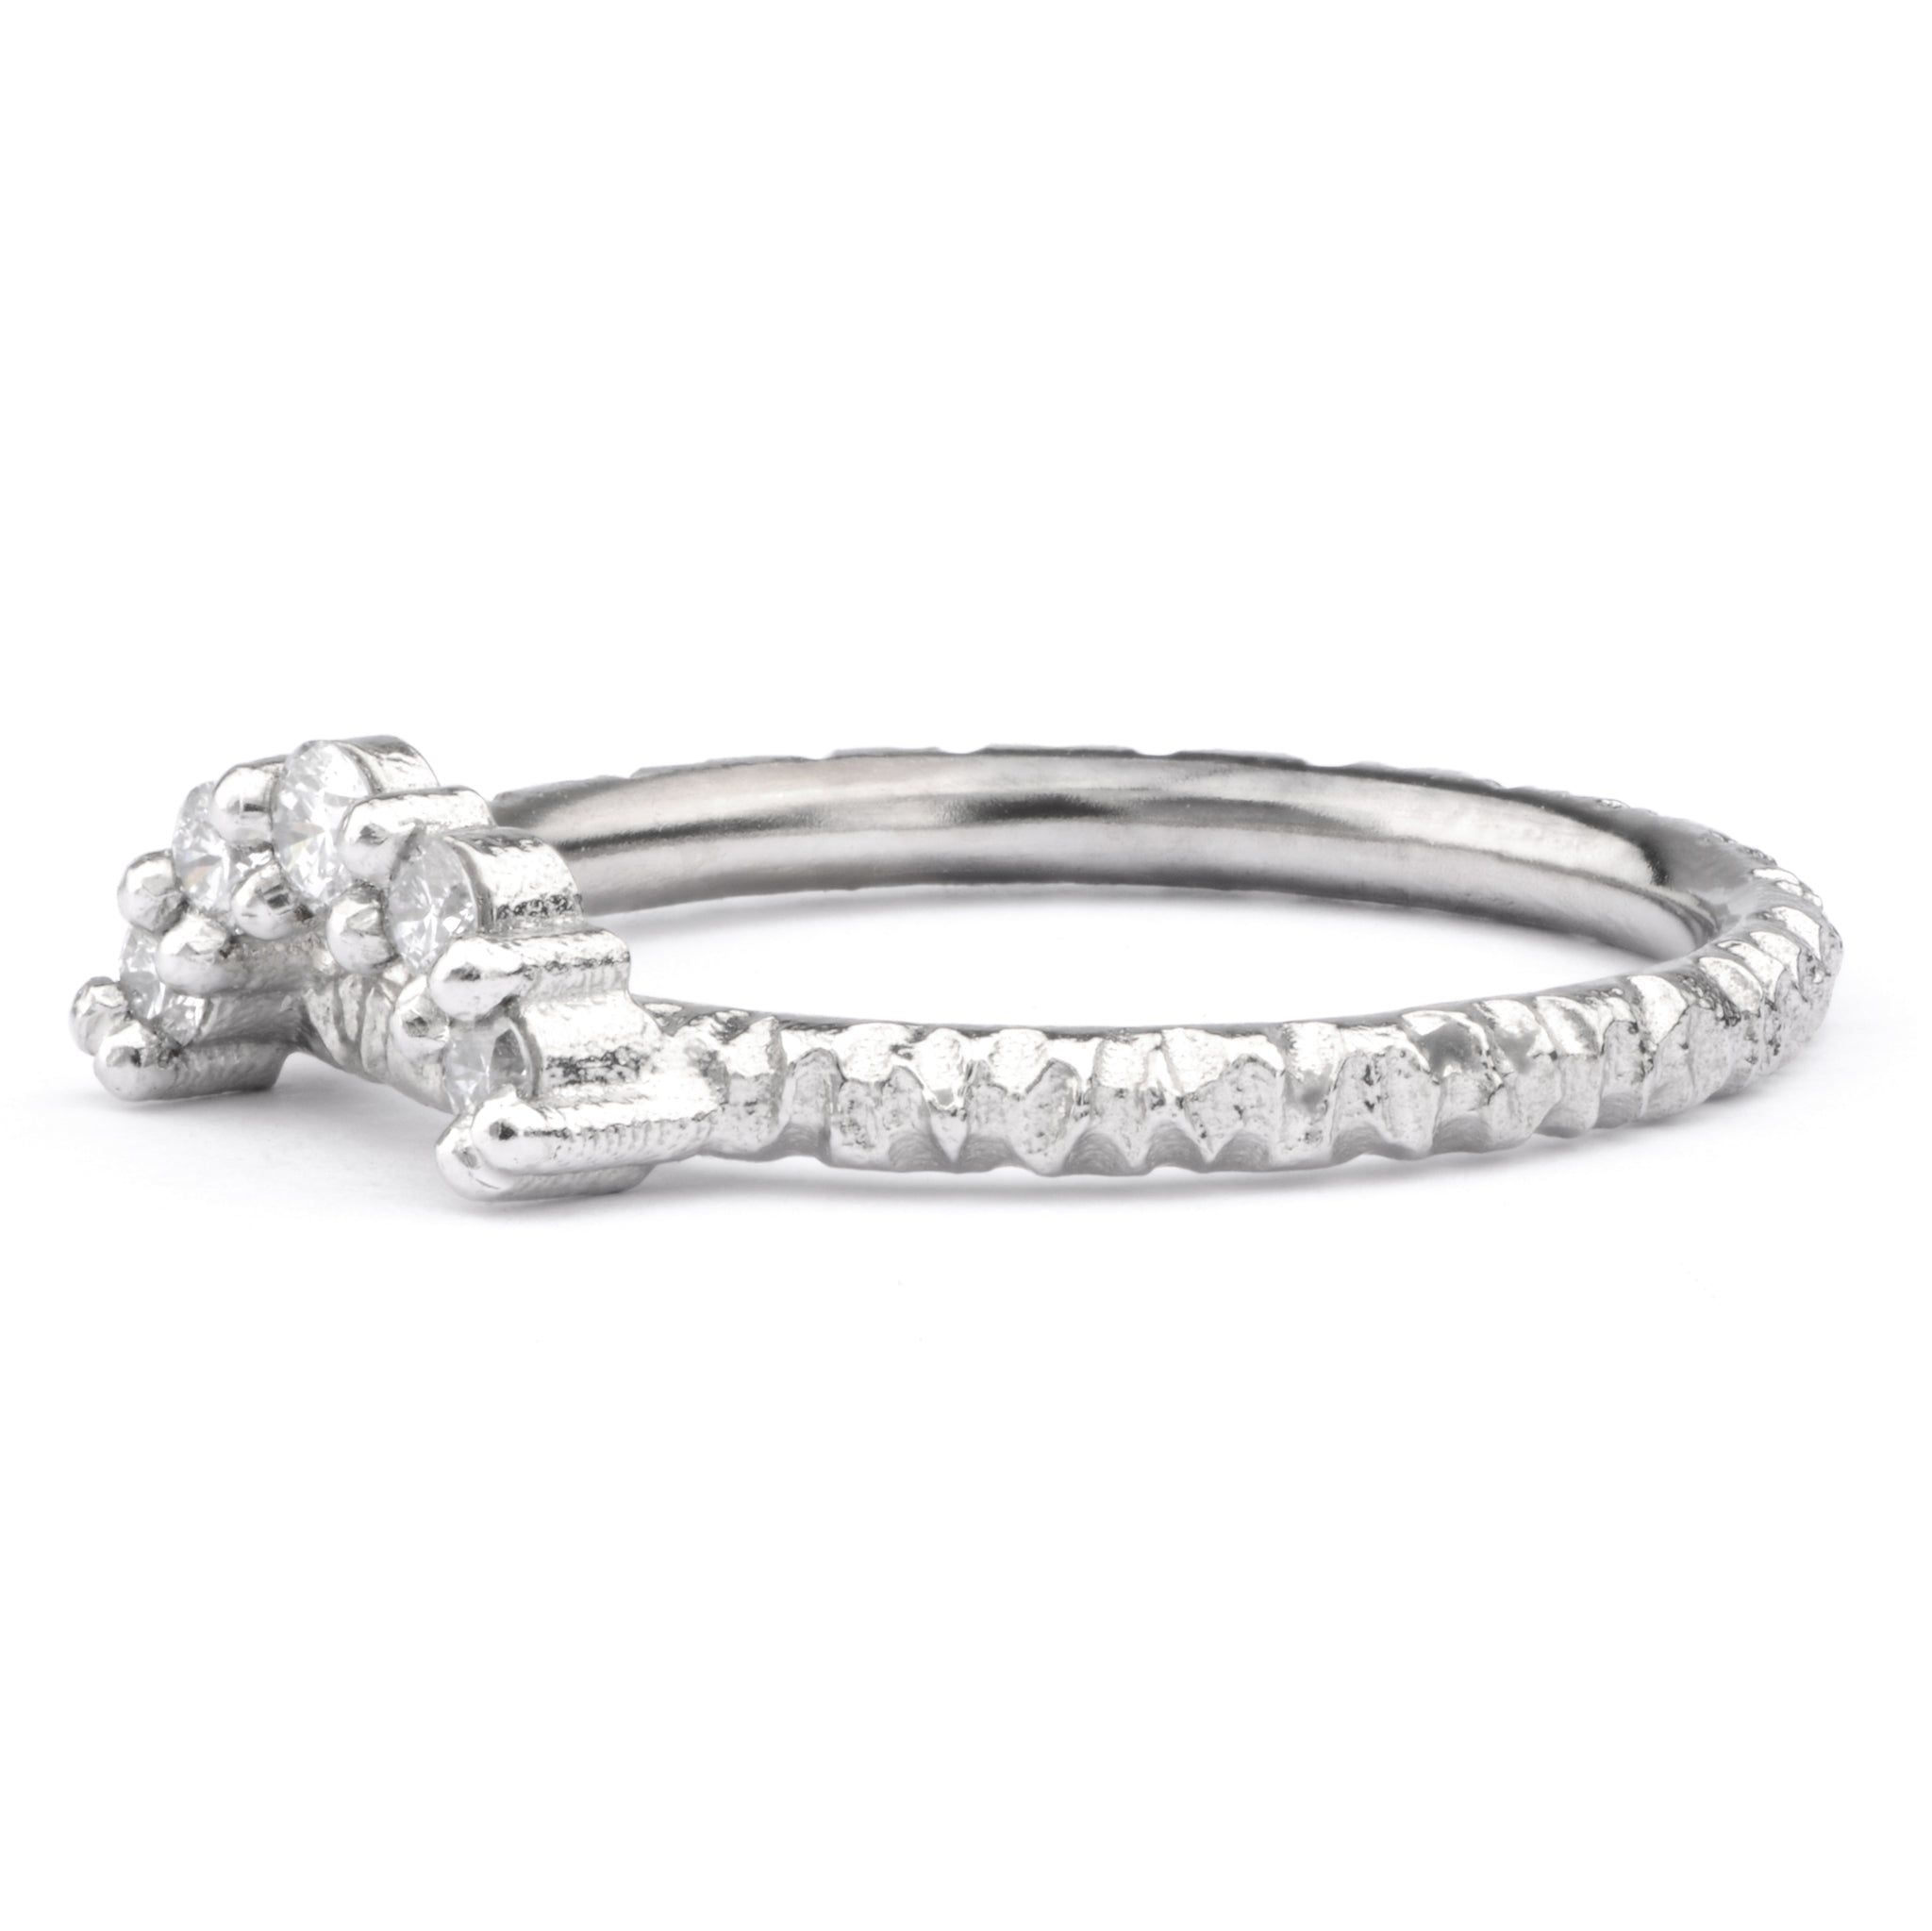 Large White Diamond and Platinum Tiara Ring - James Newman Jewellery